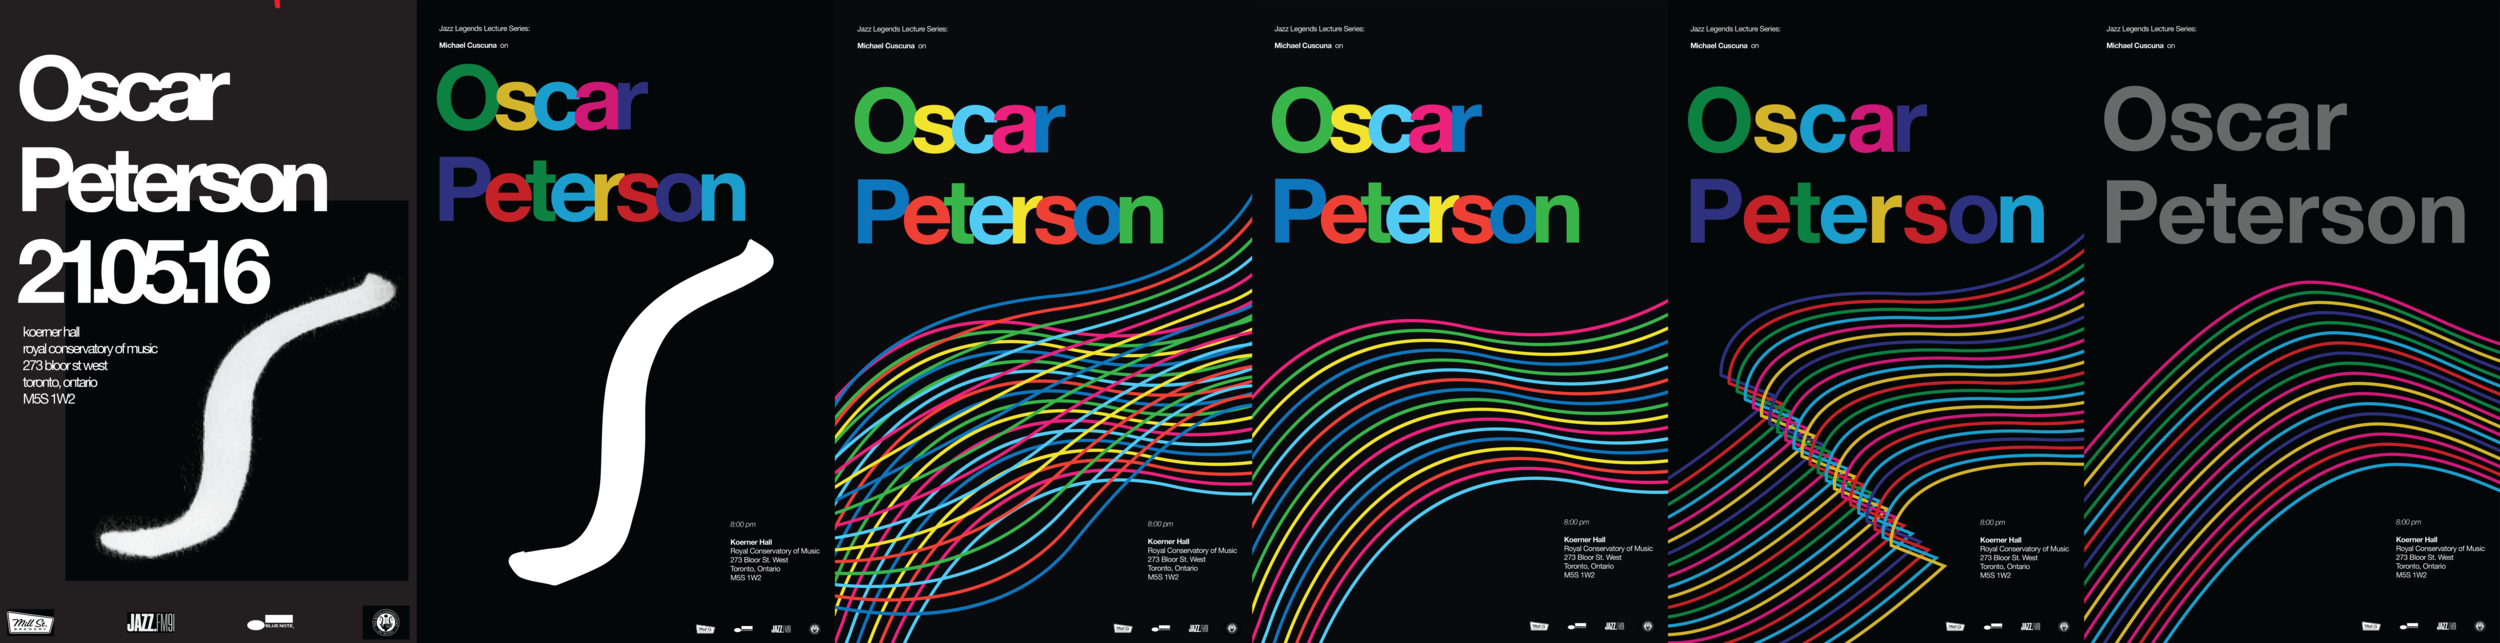 The evolution of the poster from its first digital mockup